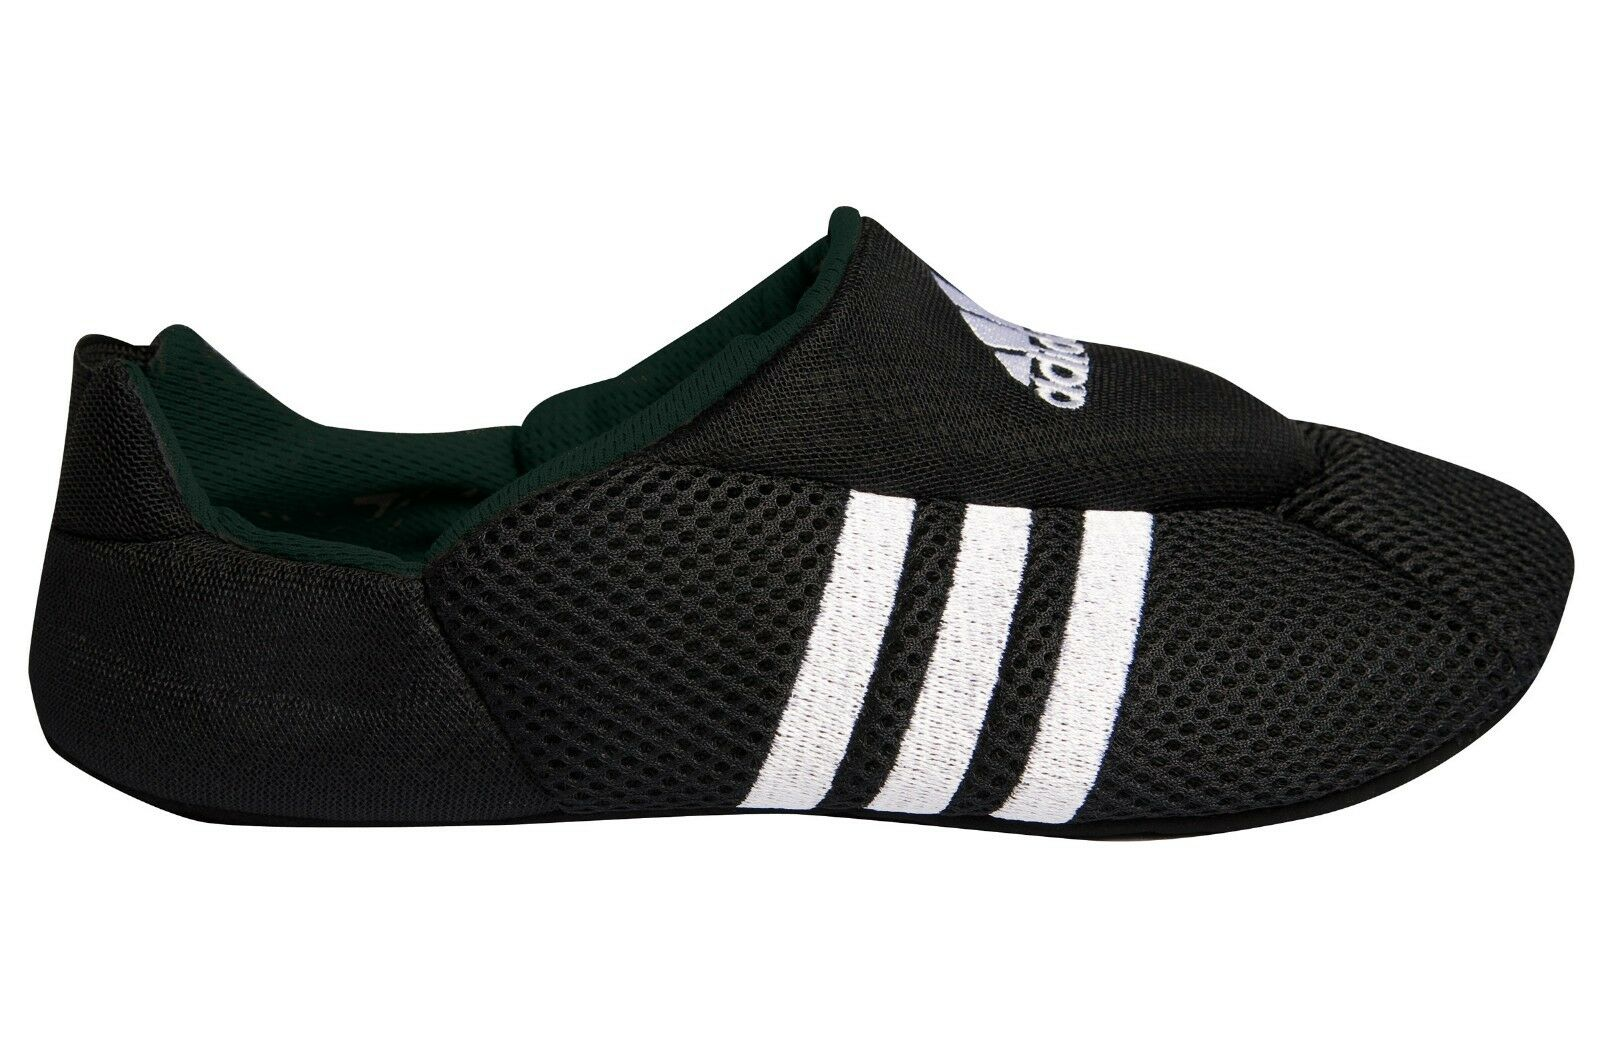 shoes DOJO ADIDAS ARTI MARZIALI AMERICANA MARTIAL ART SHOES da interno black